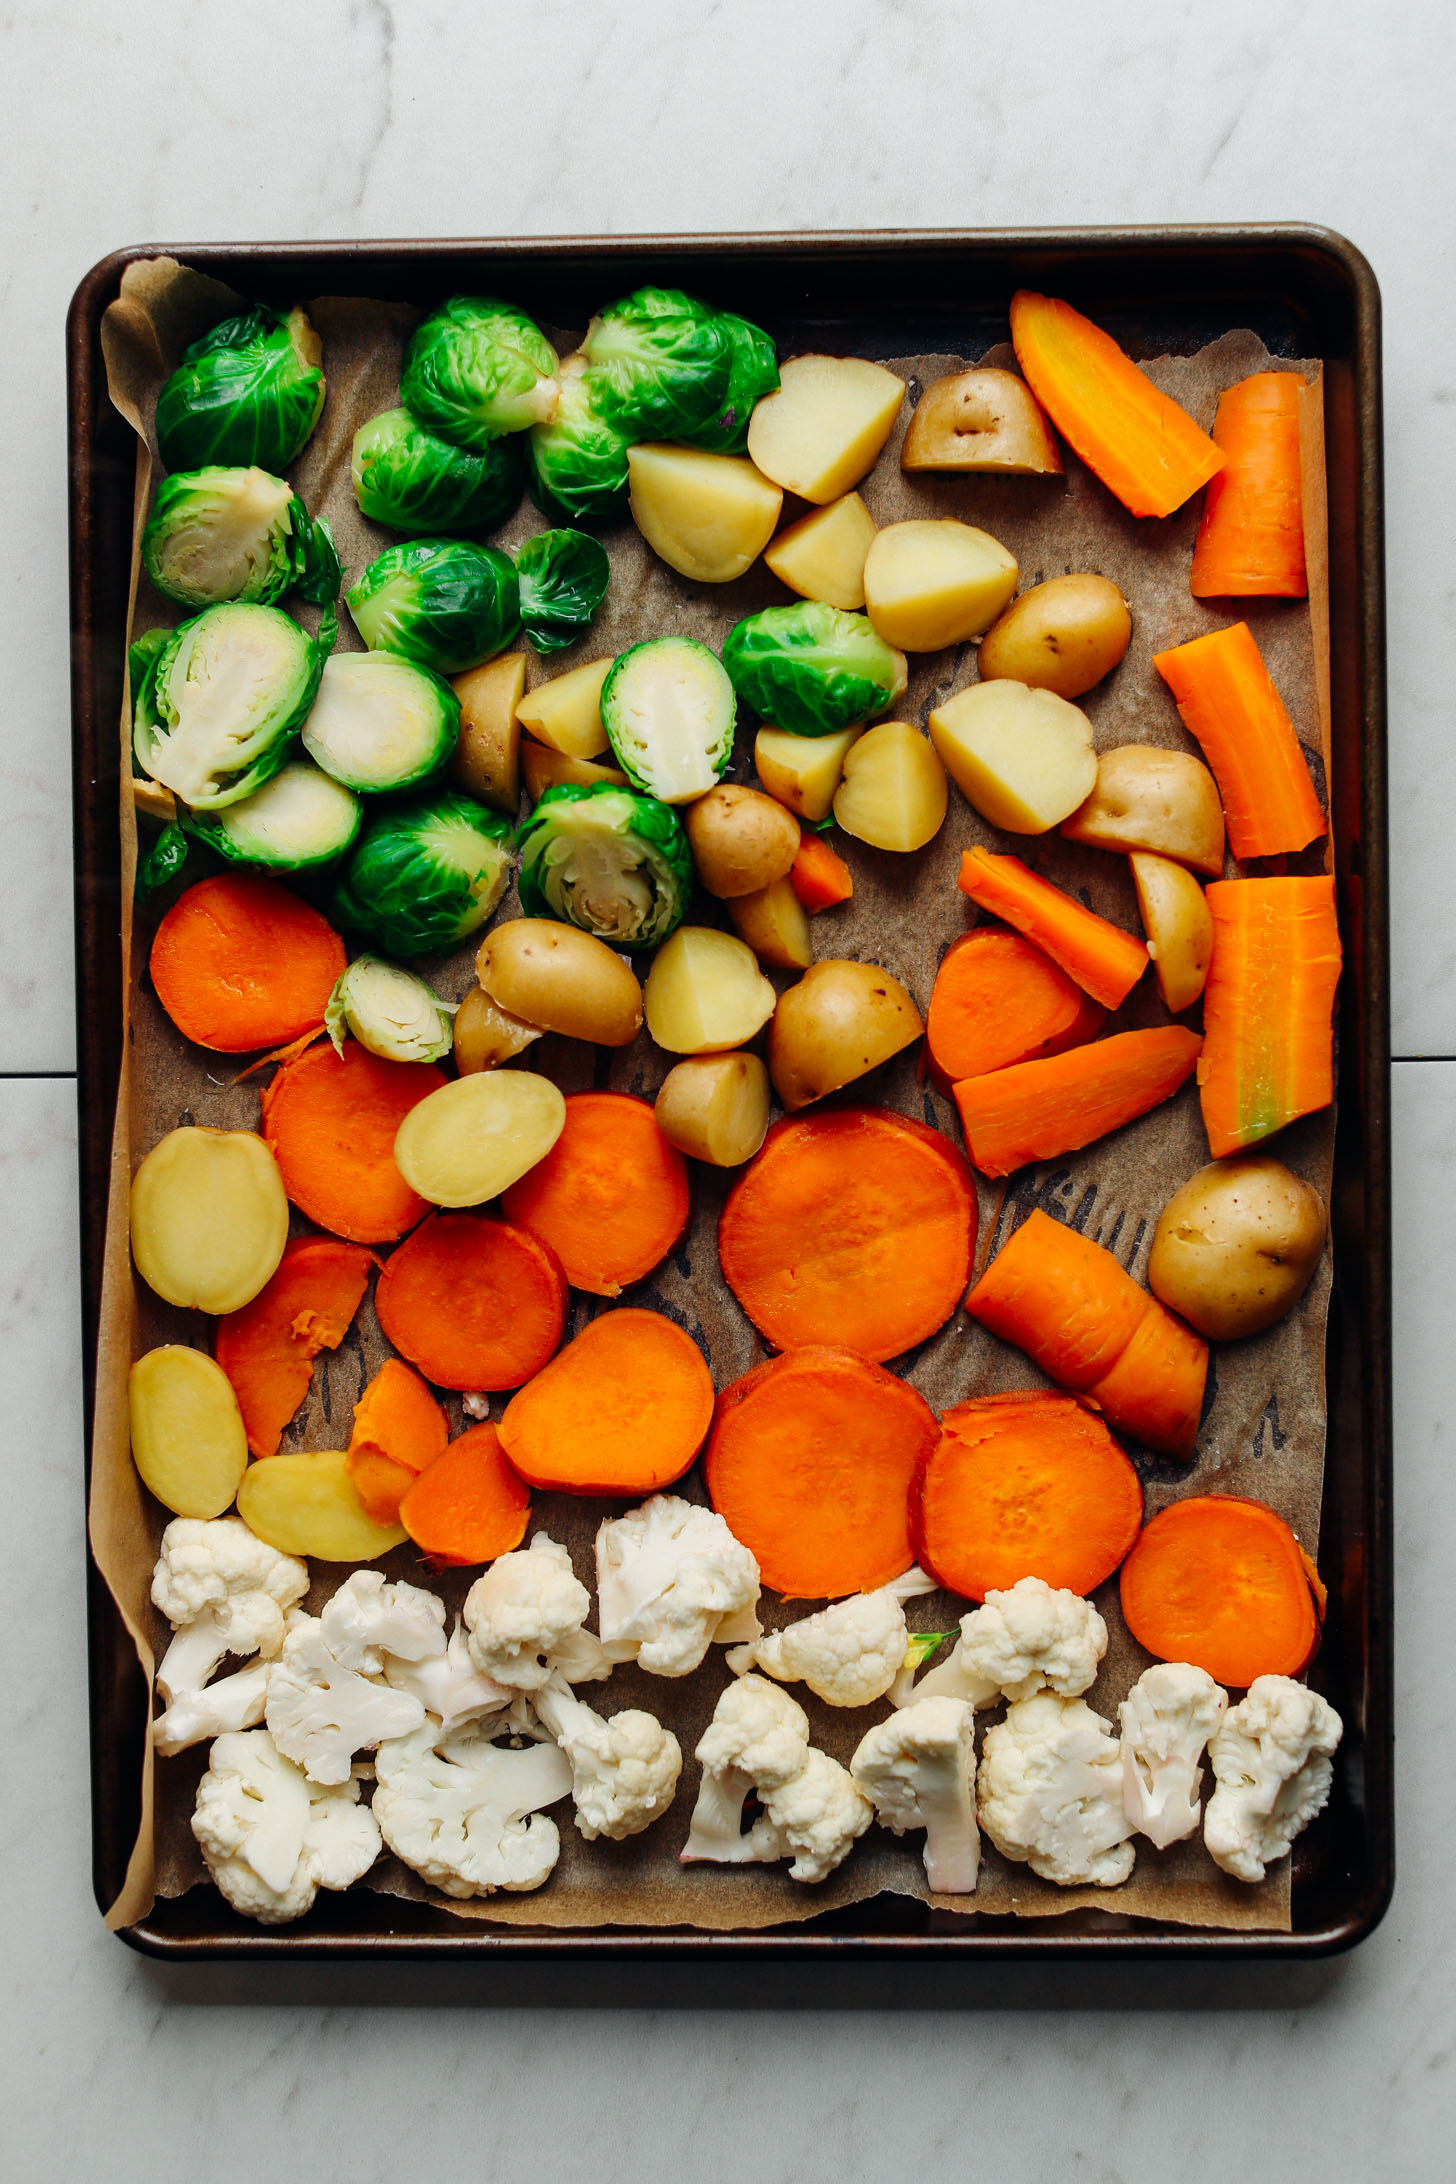 Baking sheet of chopped cauliflower, sweet potatoes, carrots, potatoes, and Brussels Sprouts for our oven roasted vegetables recipe